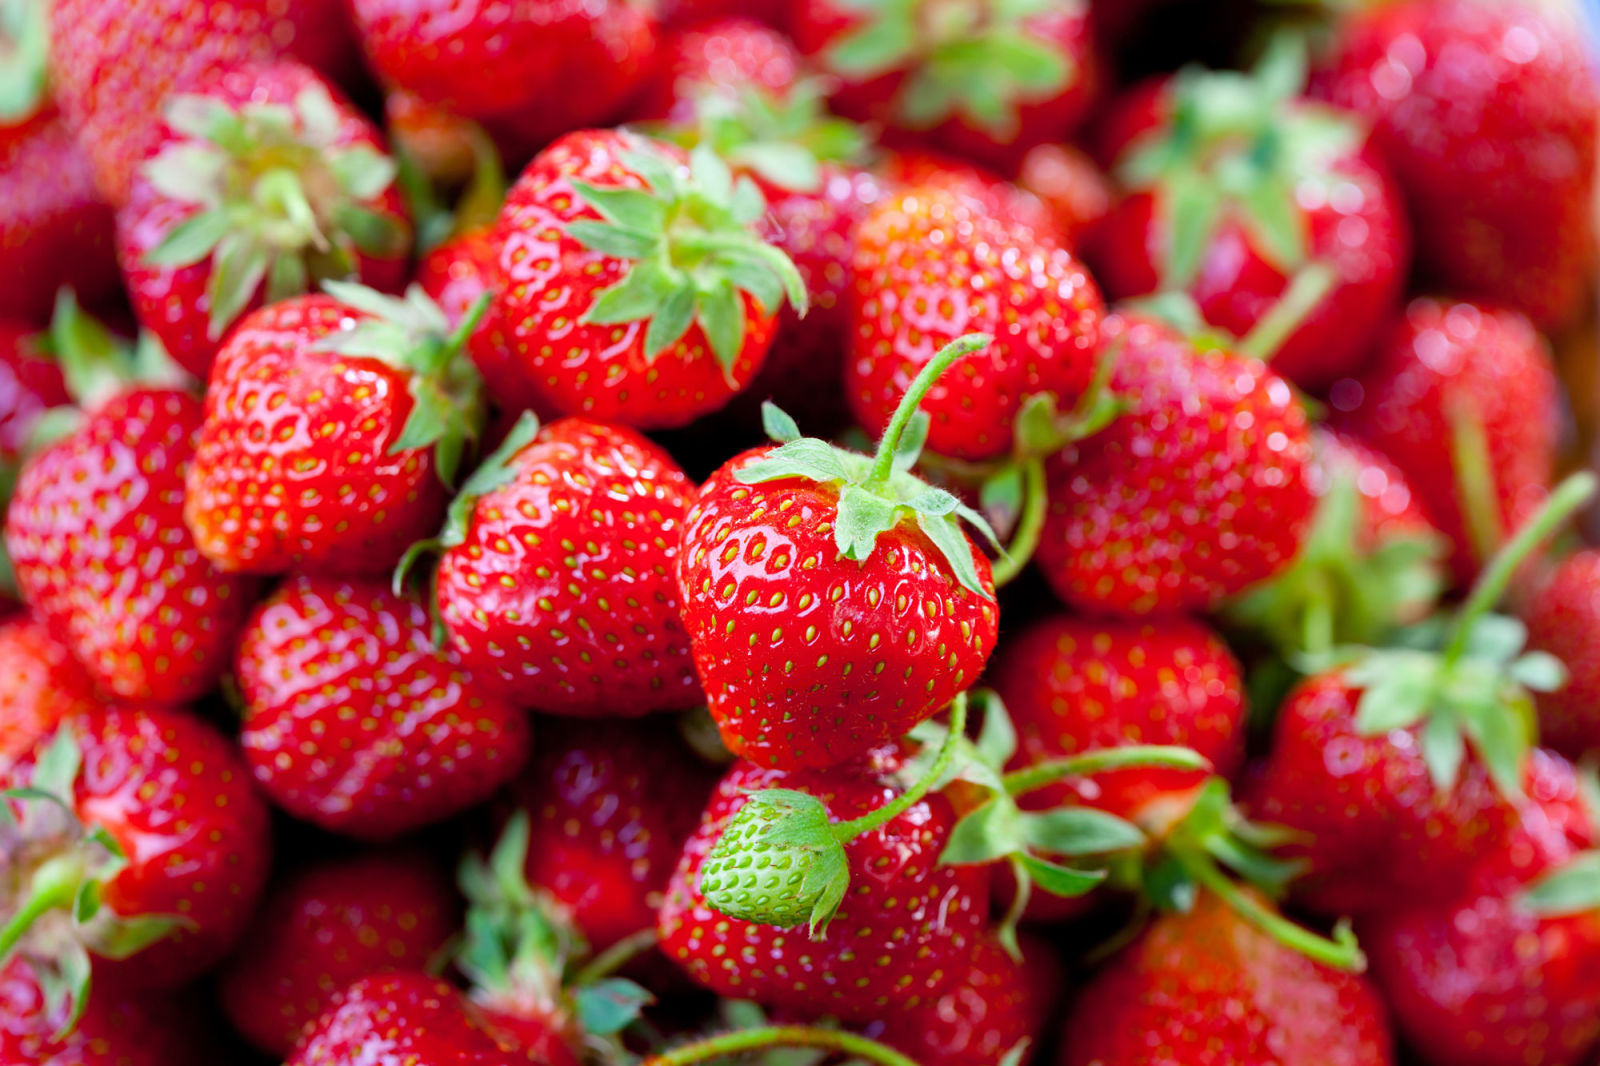 Strawberry Facts Fun Facts About Strawberries